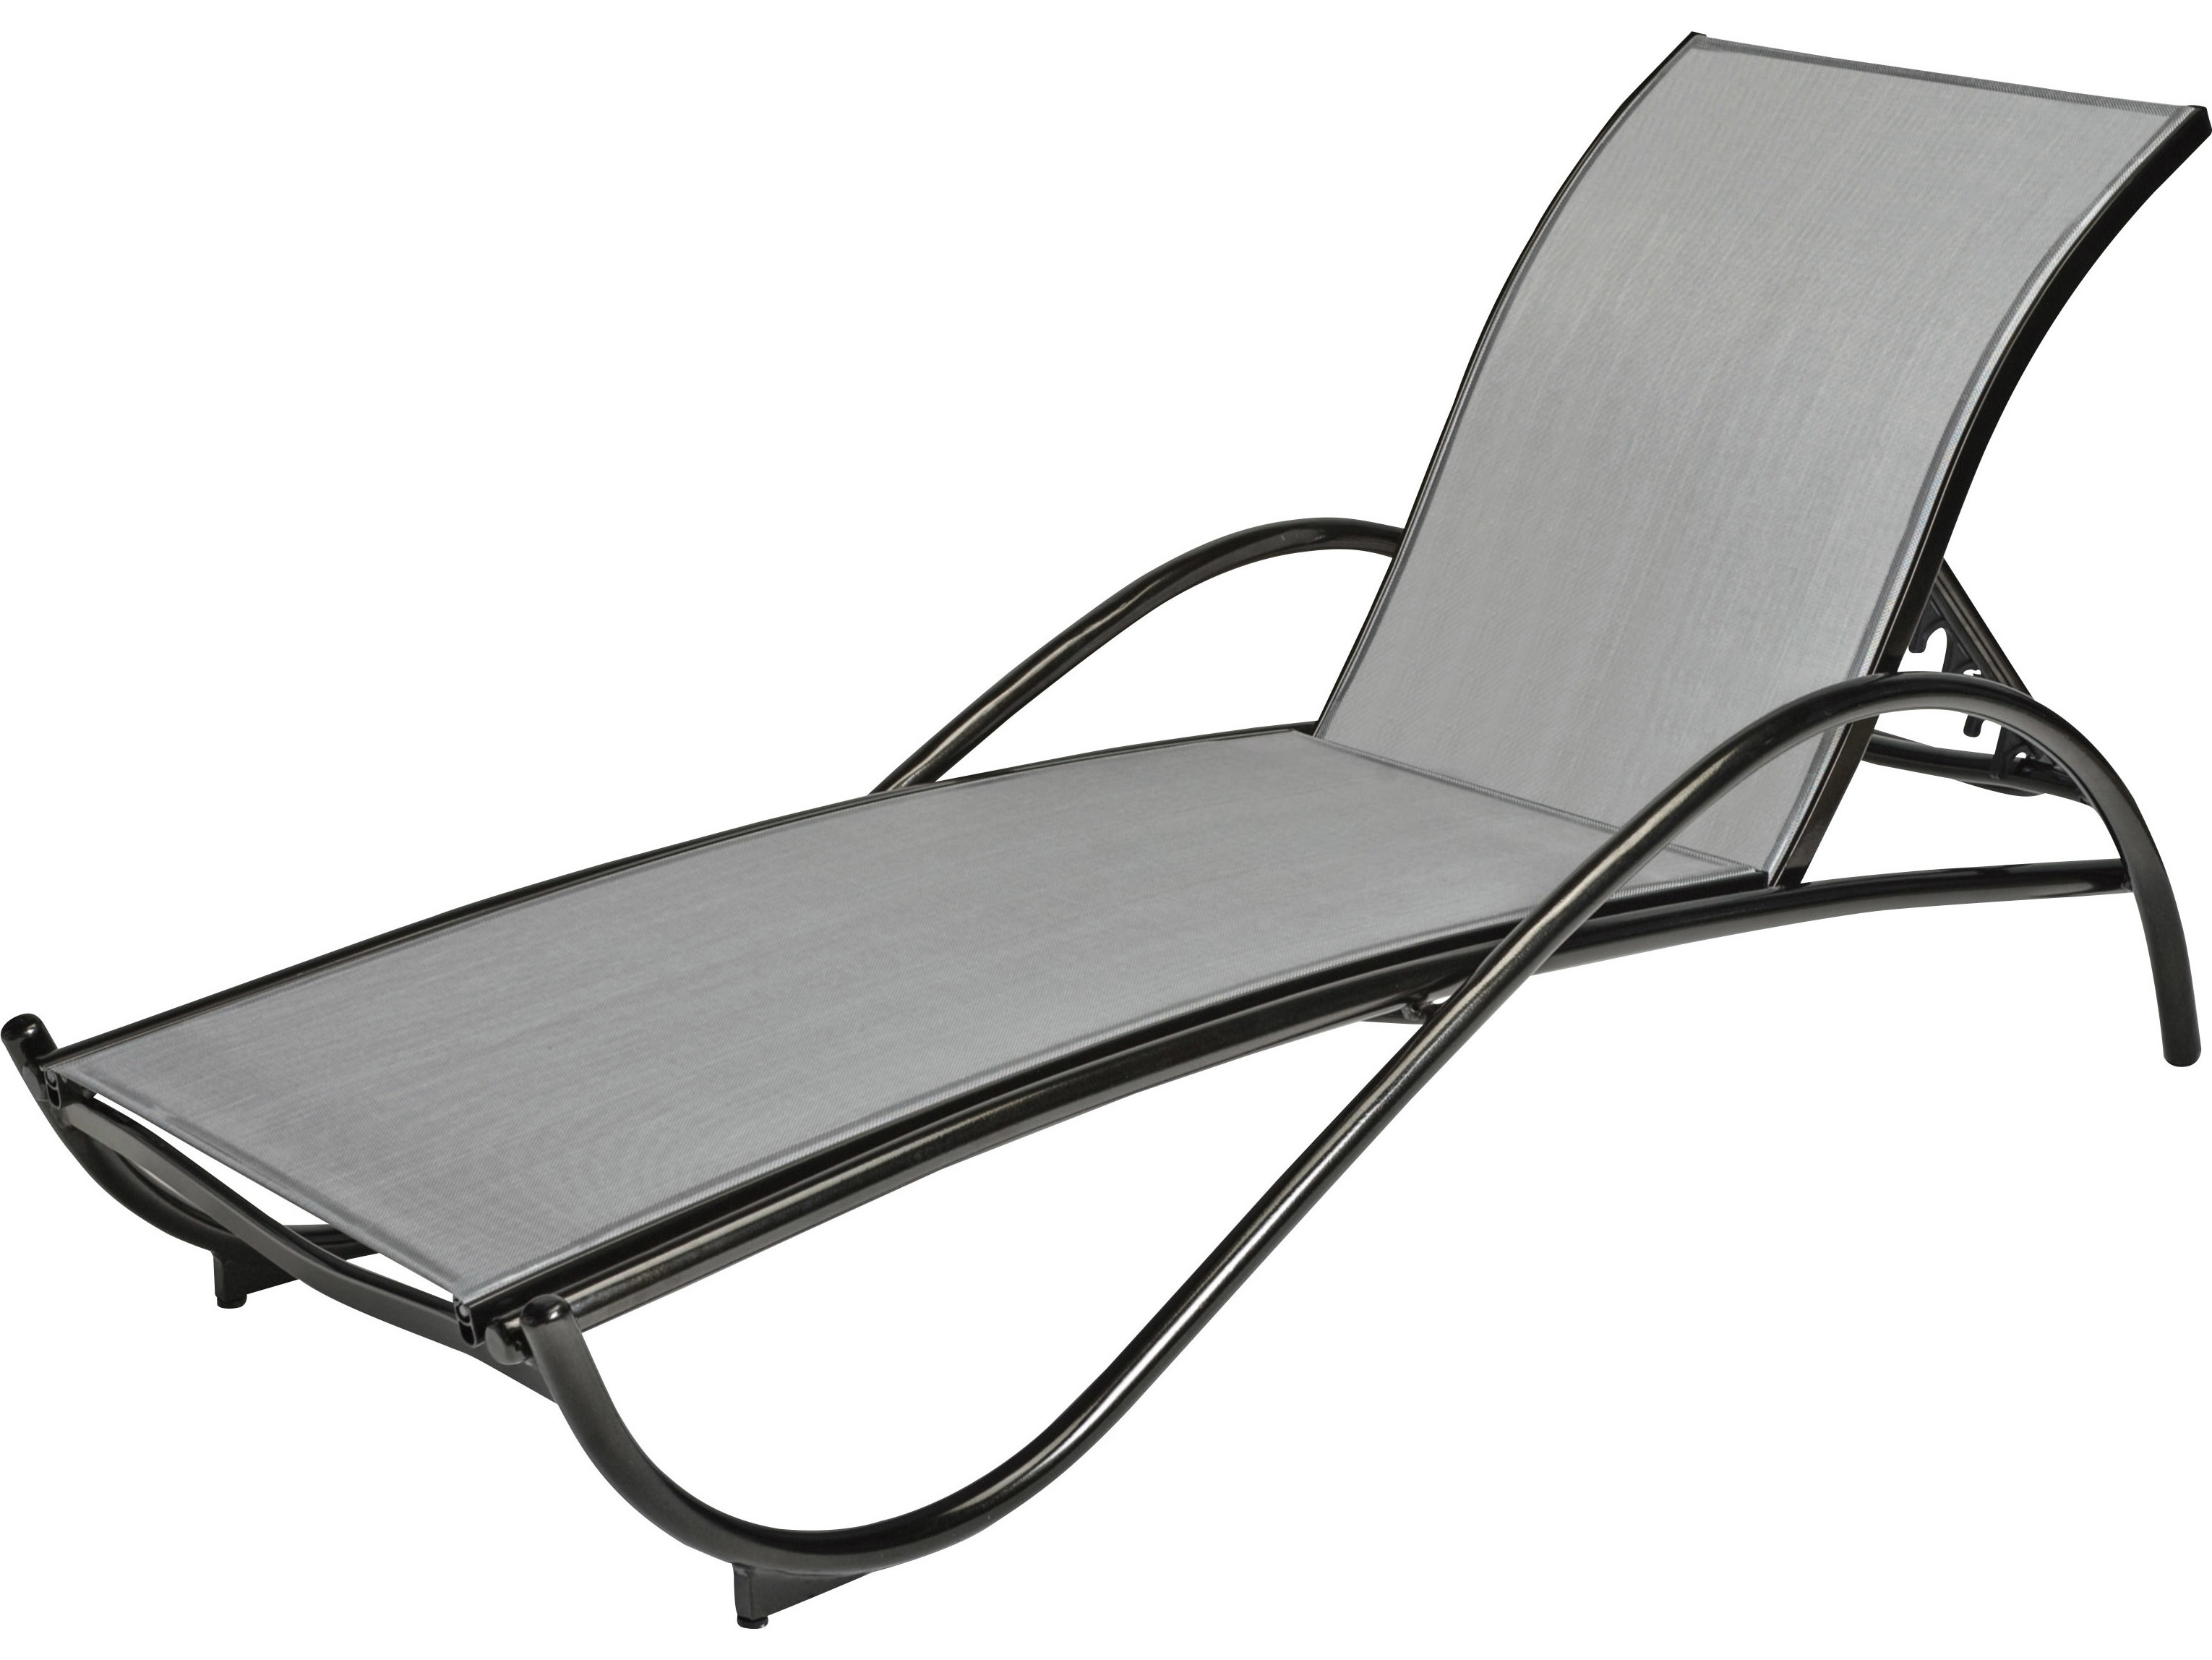 Picture 4 Of 38 – Lounge Outdoor Chairs Elegant Woodard Tribeca Intended For Most Up To Date Aluminum Chaise Lounges (View 11 of 15)